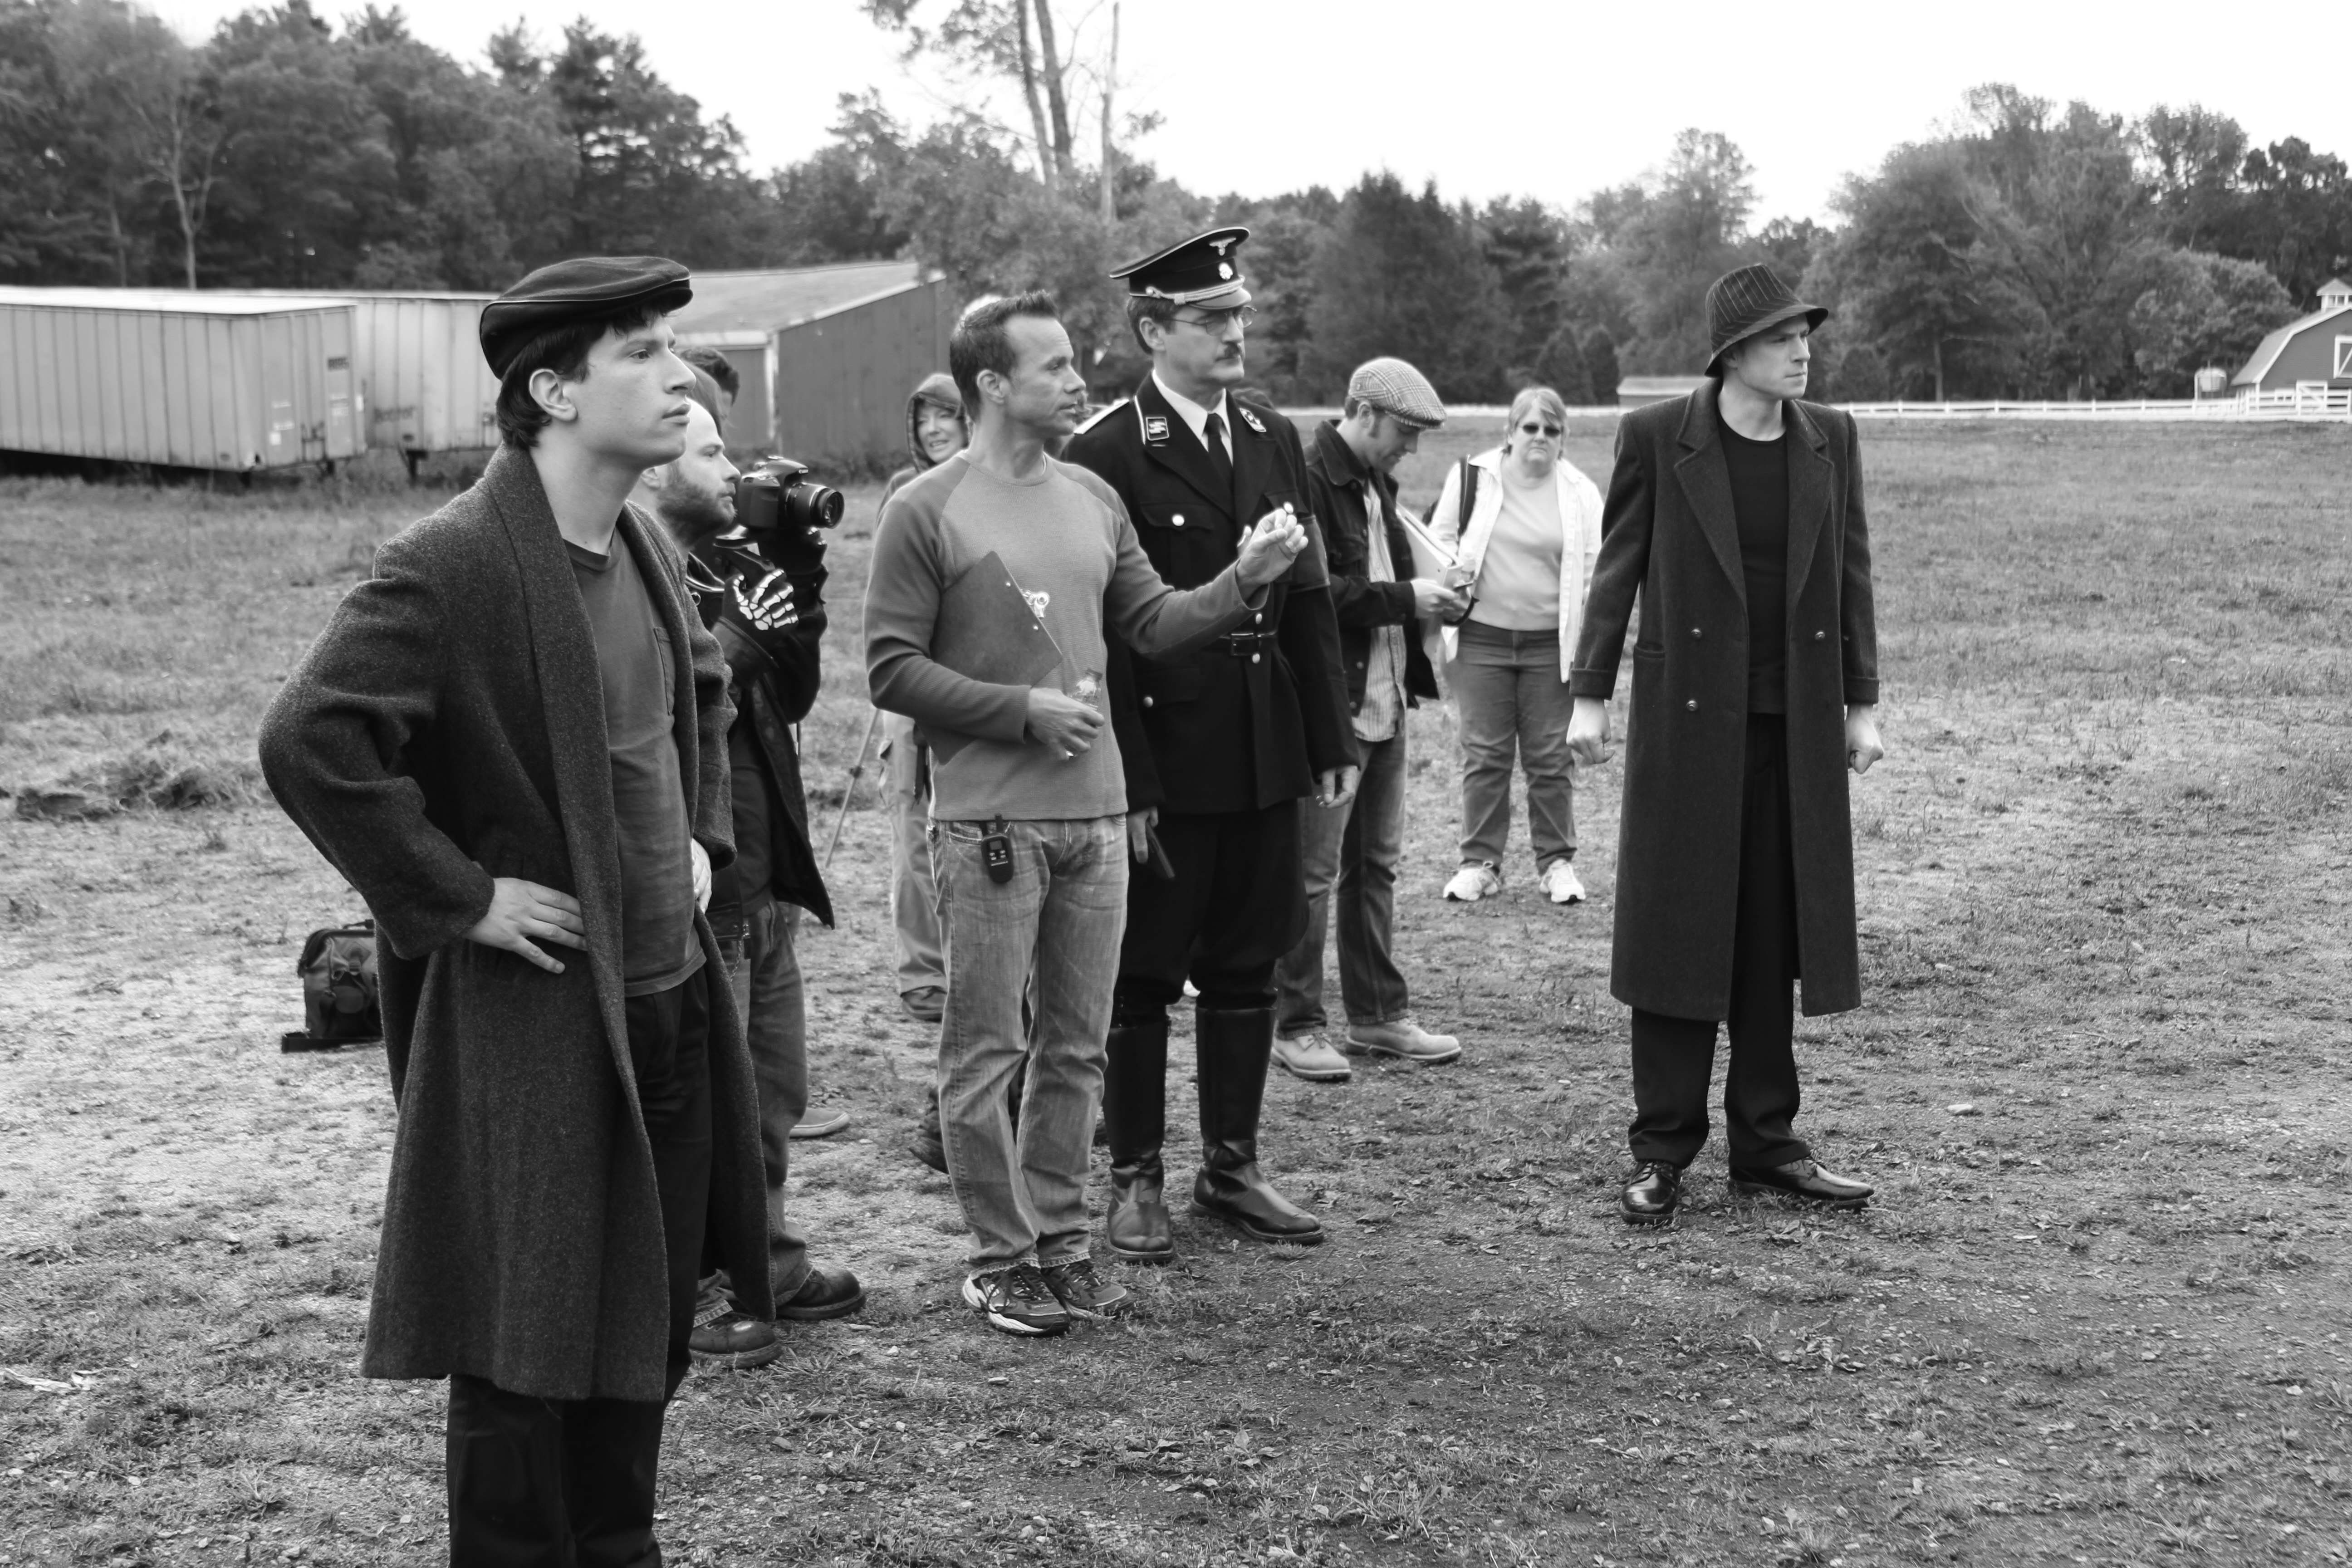 A never before published behind the scenes photo. Preparing to film the primary memory sequence that takes place in 1944 Germany.